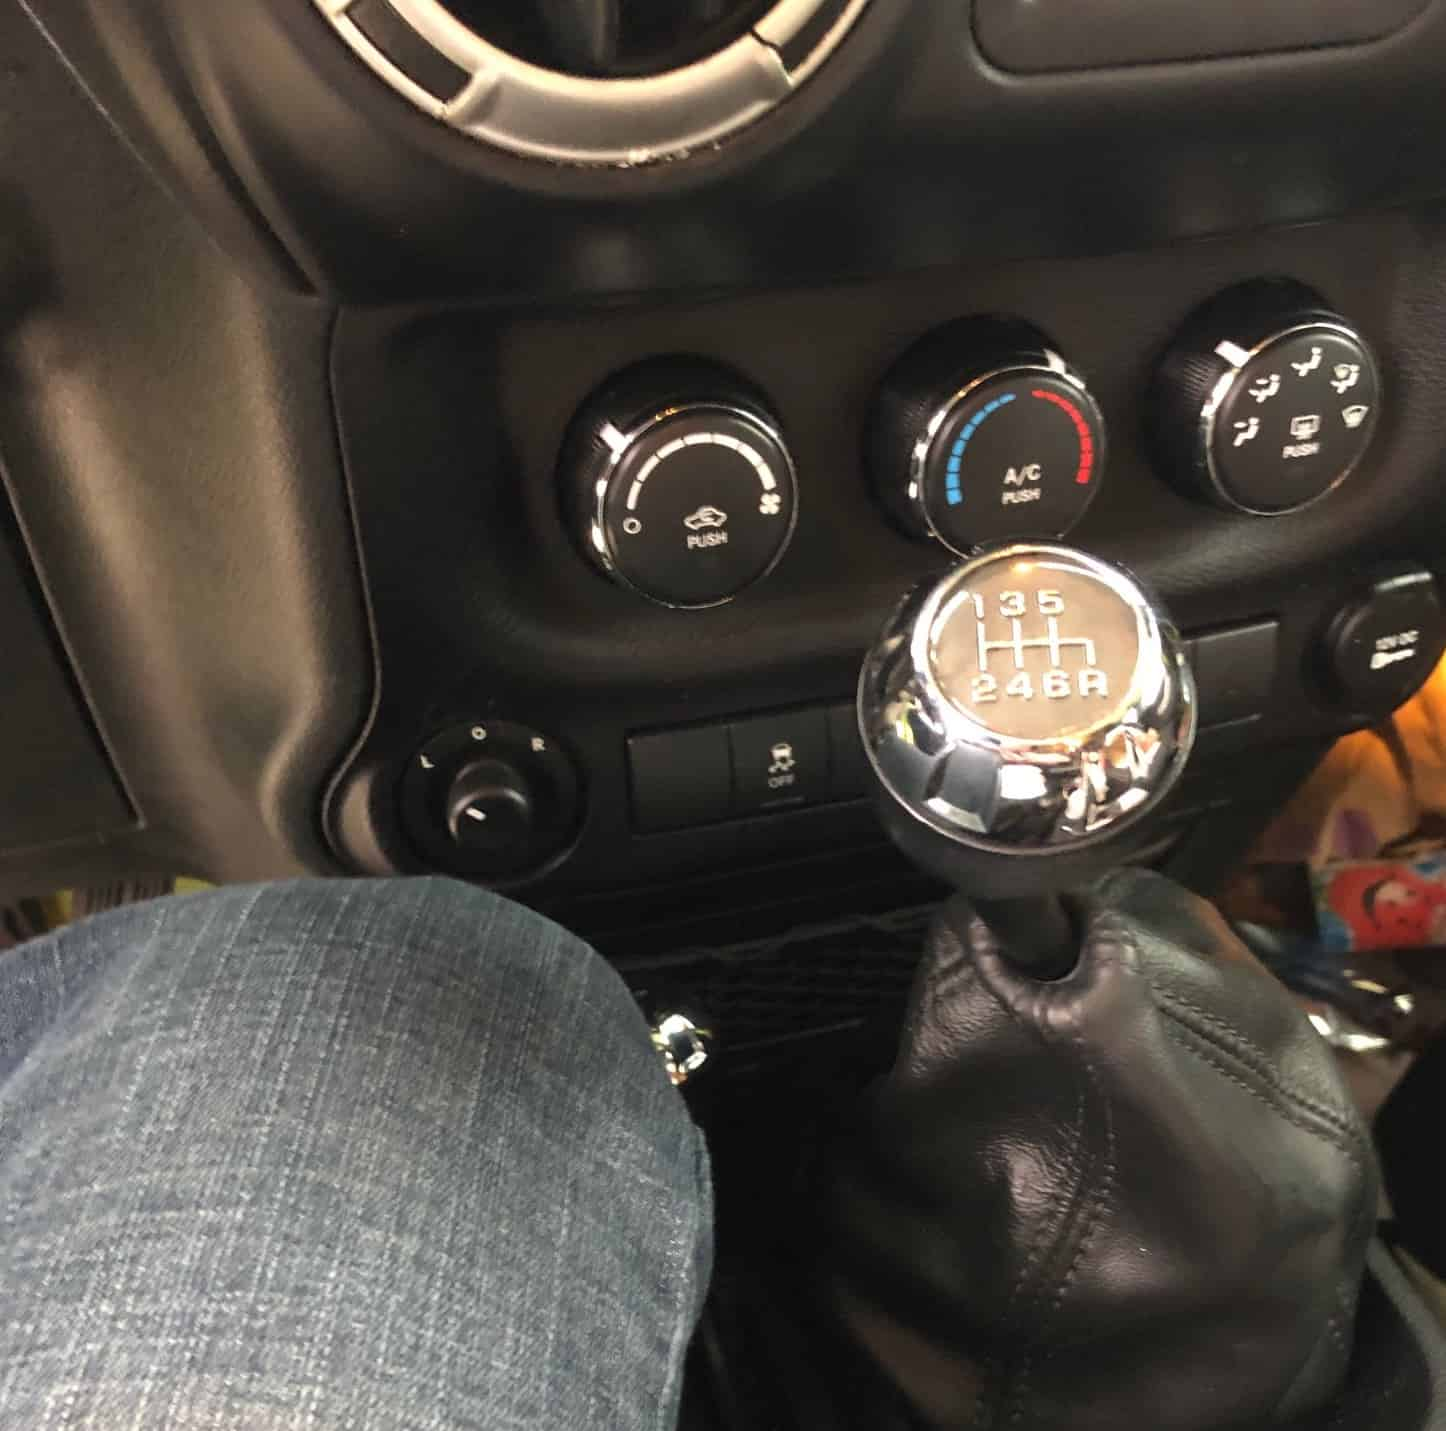 Manual shifter in a Jeep.